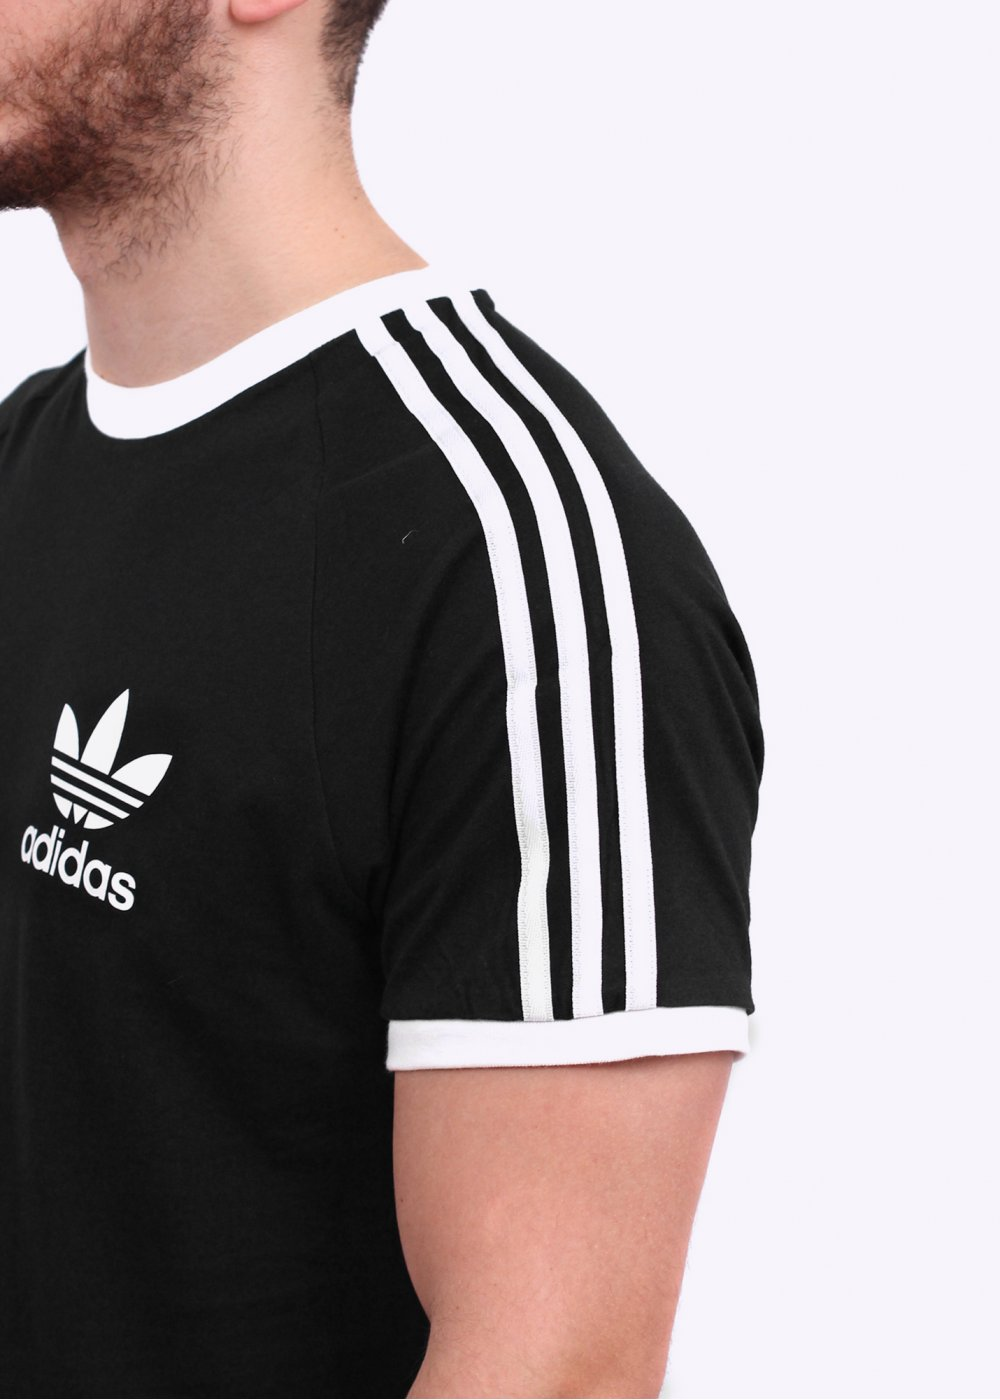 Adidas originals sports ess tee black for Adidas ringer t shirt